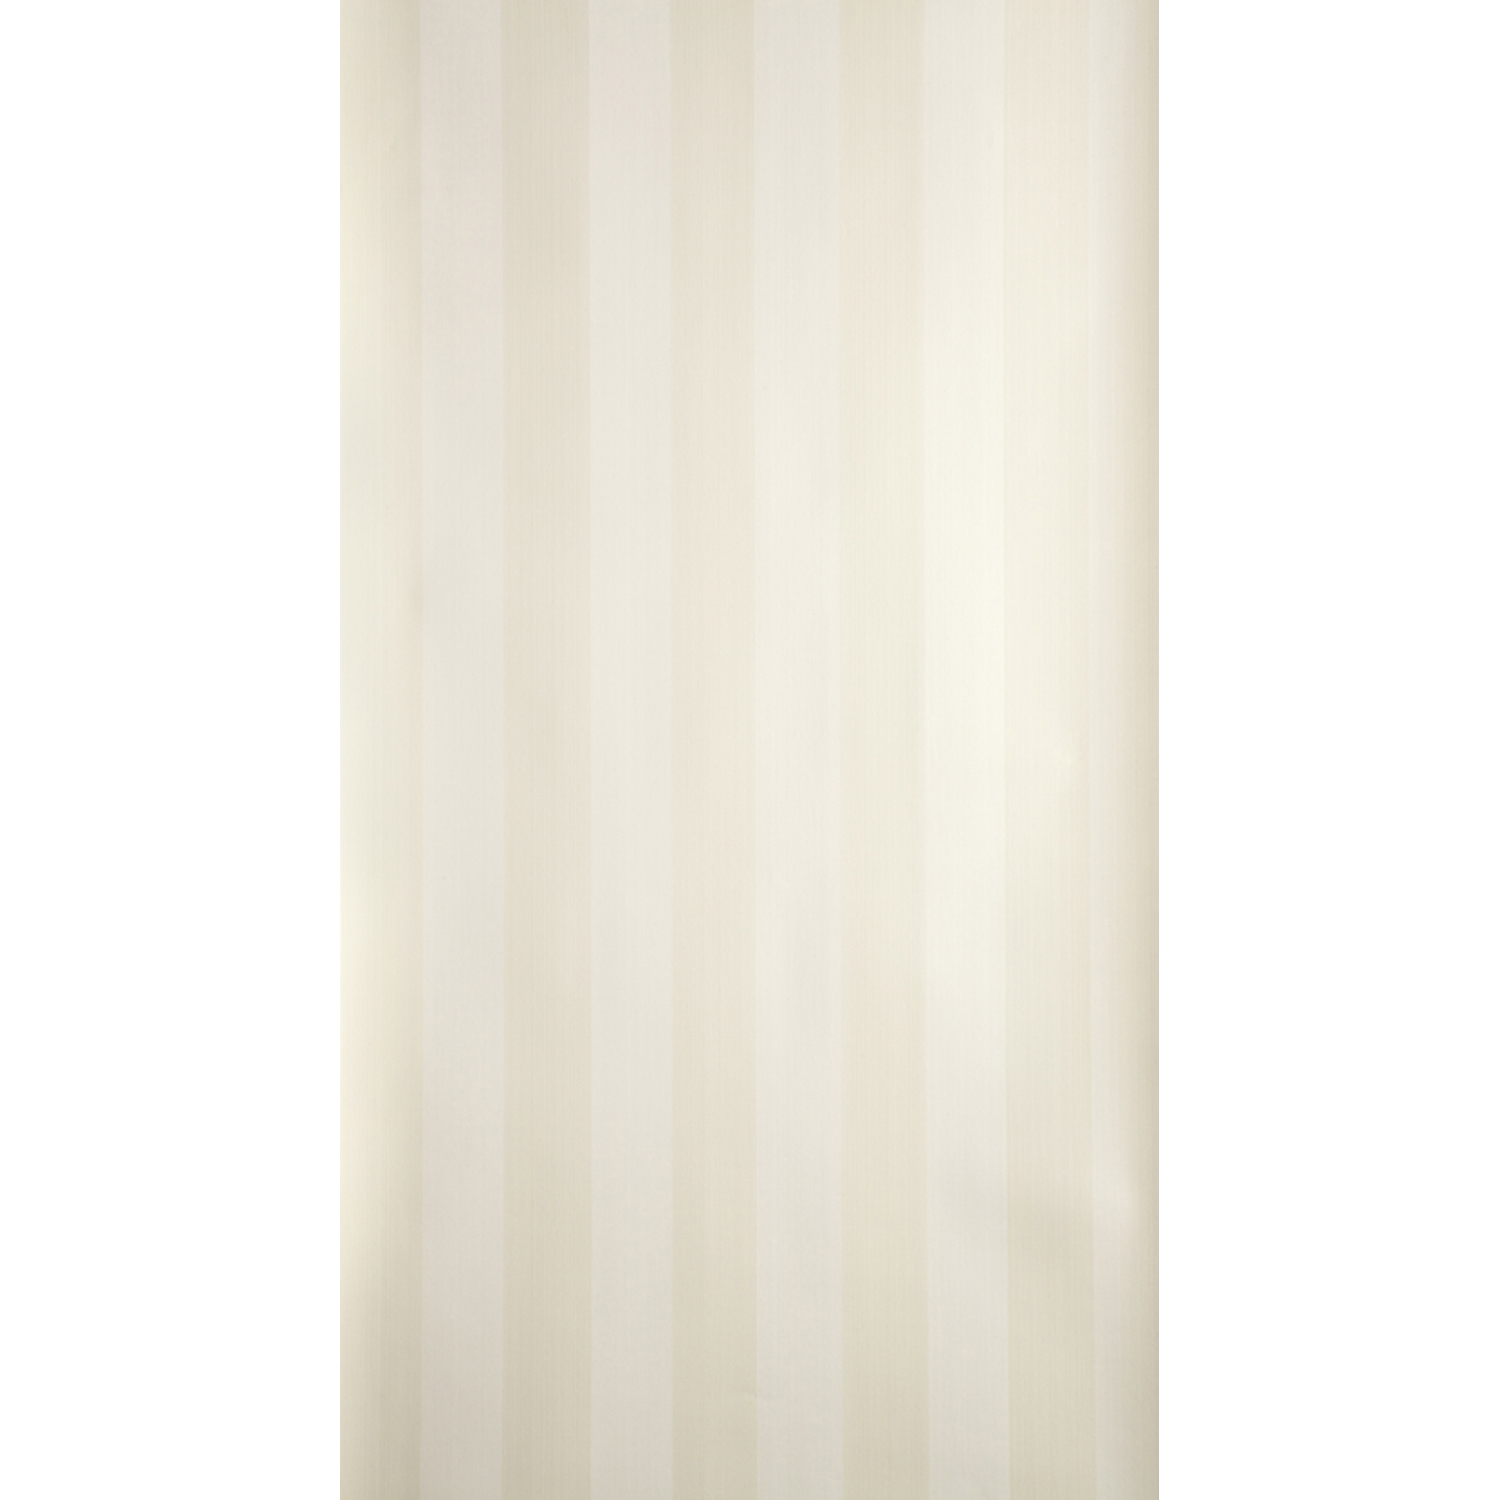 Image of Farrow And Ball 5 Stripe Wallpaper 6-97, Beige